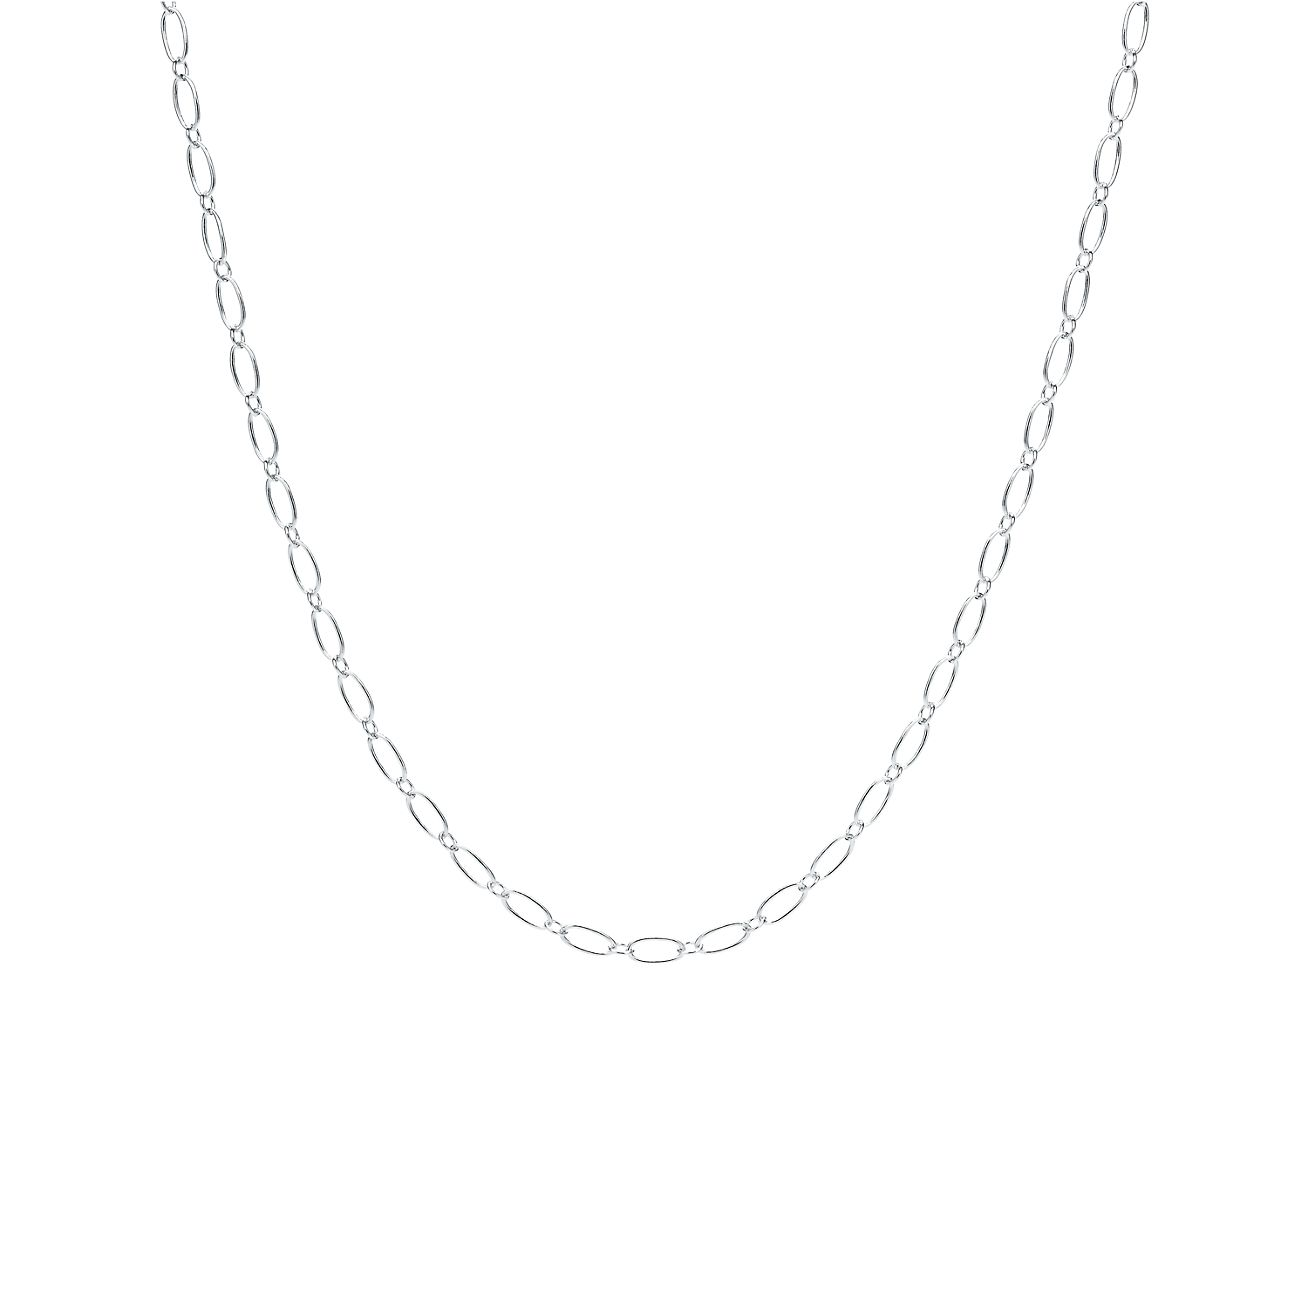 silver en sterling necklace link oval big